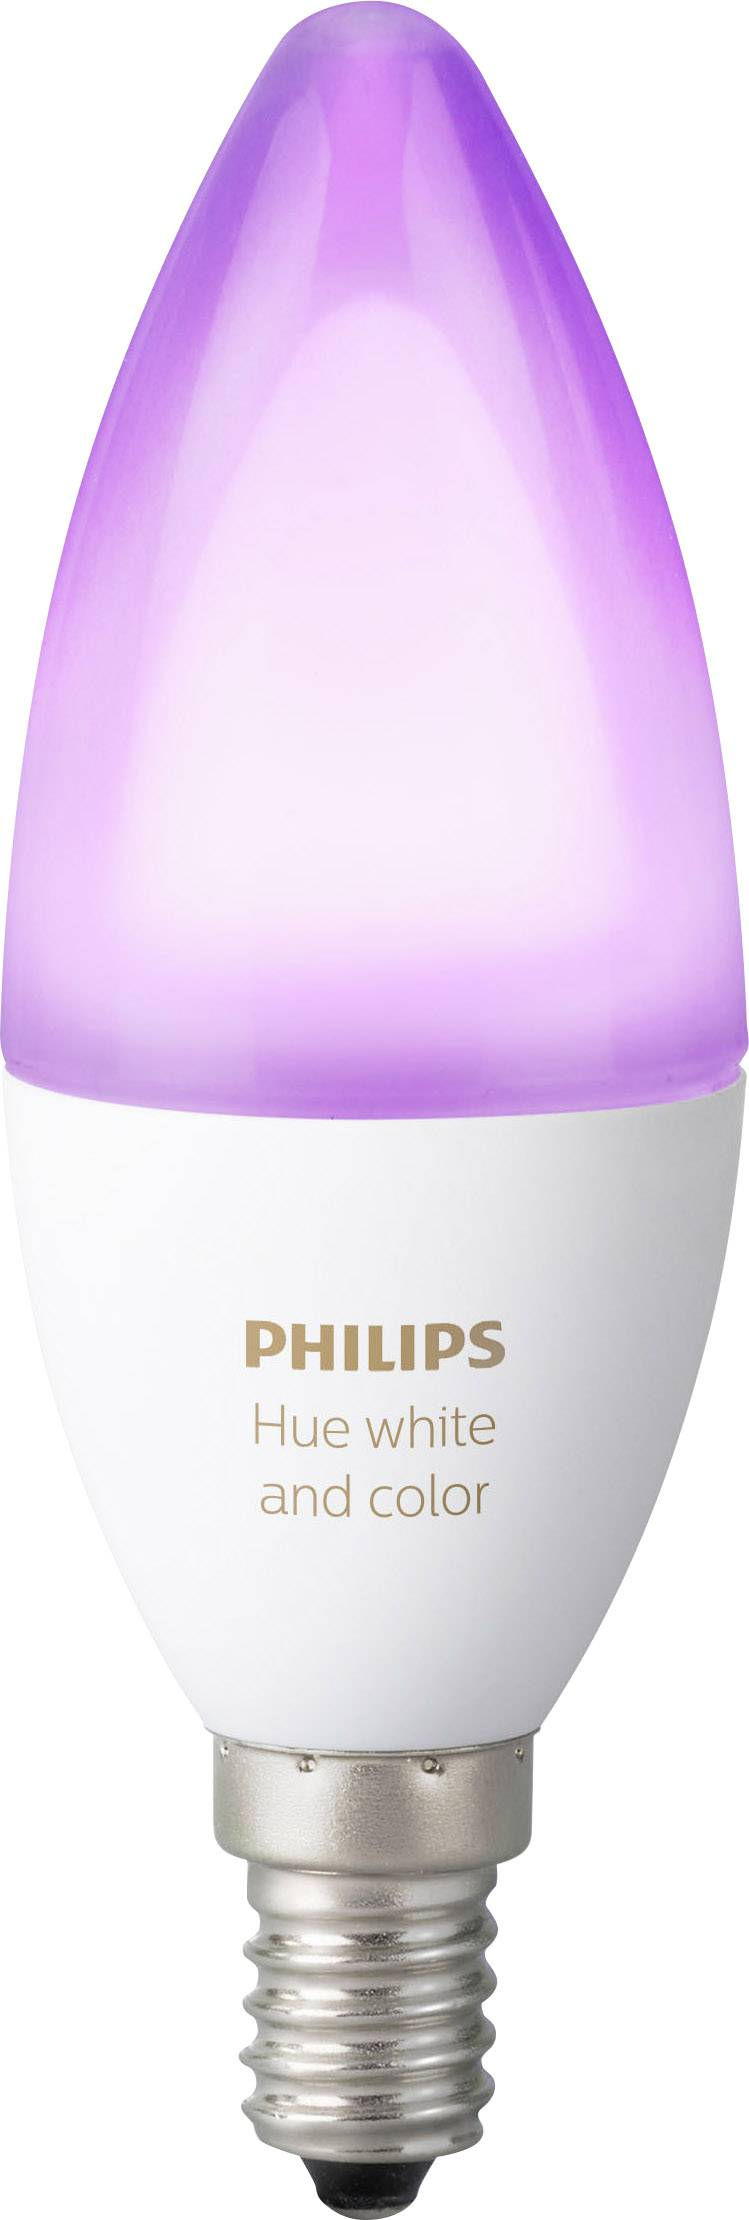 Rvbb And EecAaEE14 Lighting Ampoule 5 W Philips Hue LedseuleWhite Color 6 Ambiance VpqSUMz